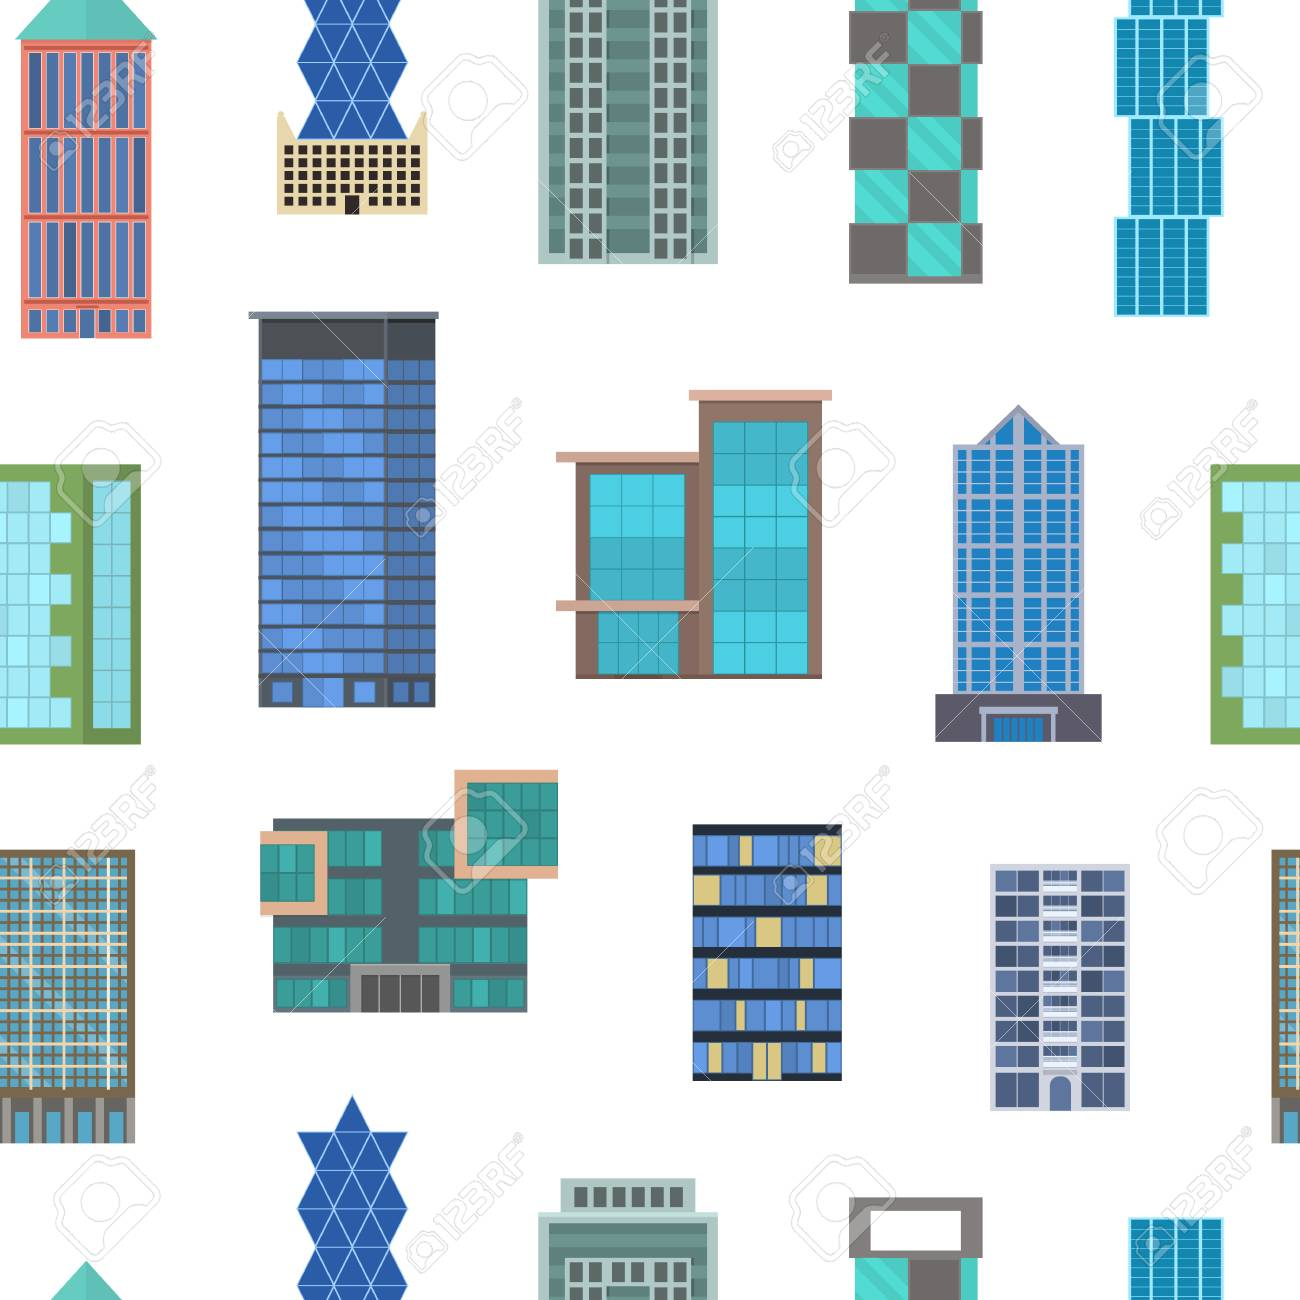 Cartoon Buildings Signs Seamless Pattern Background on a White Modern Urban Architecture Construction Office or Home Concept Flat Design Style. Vector illustration of Building - 126023852